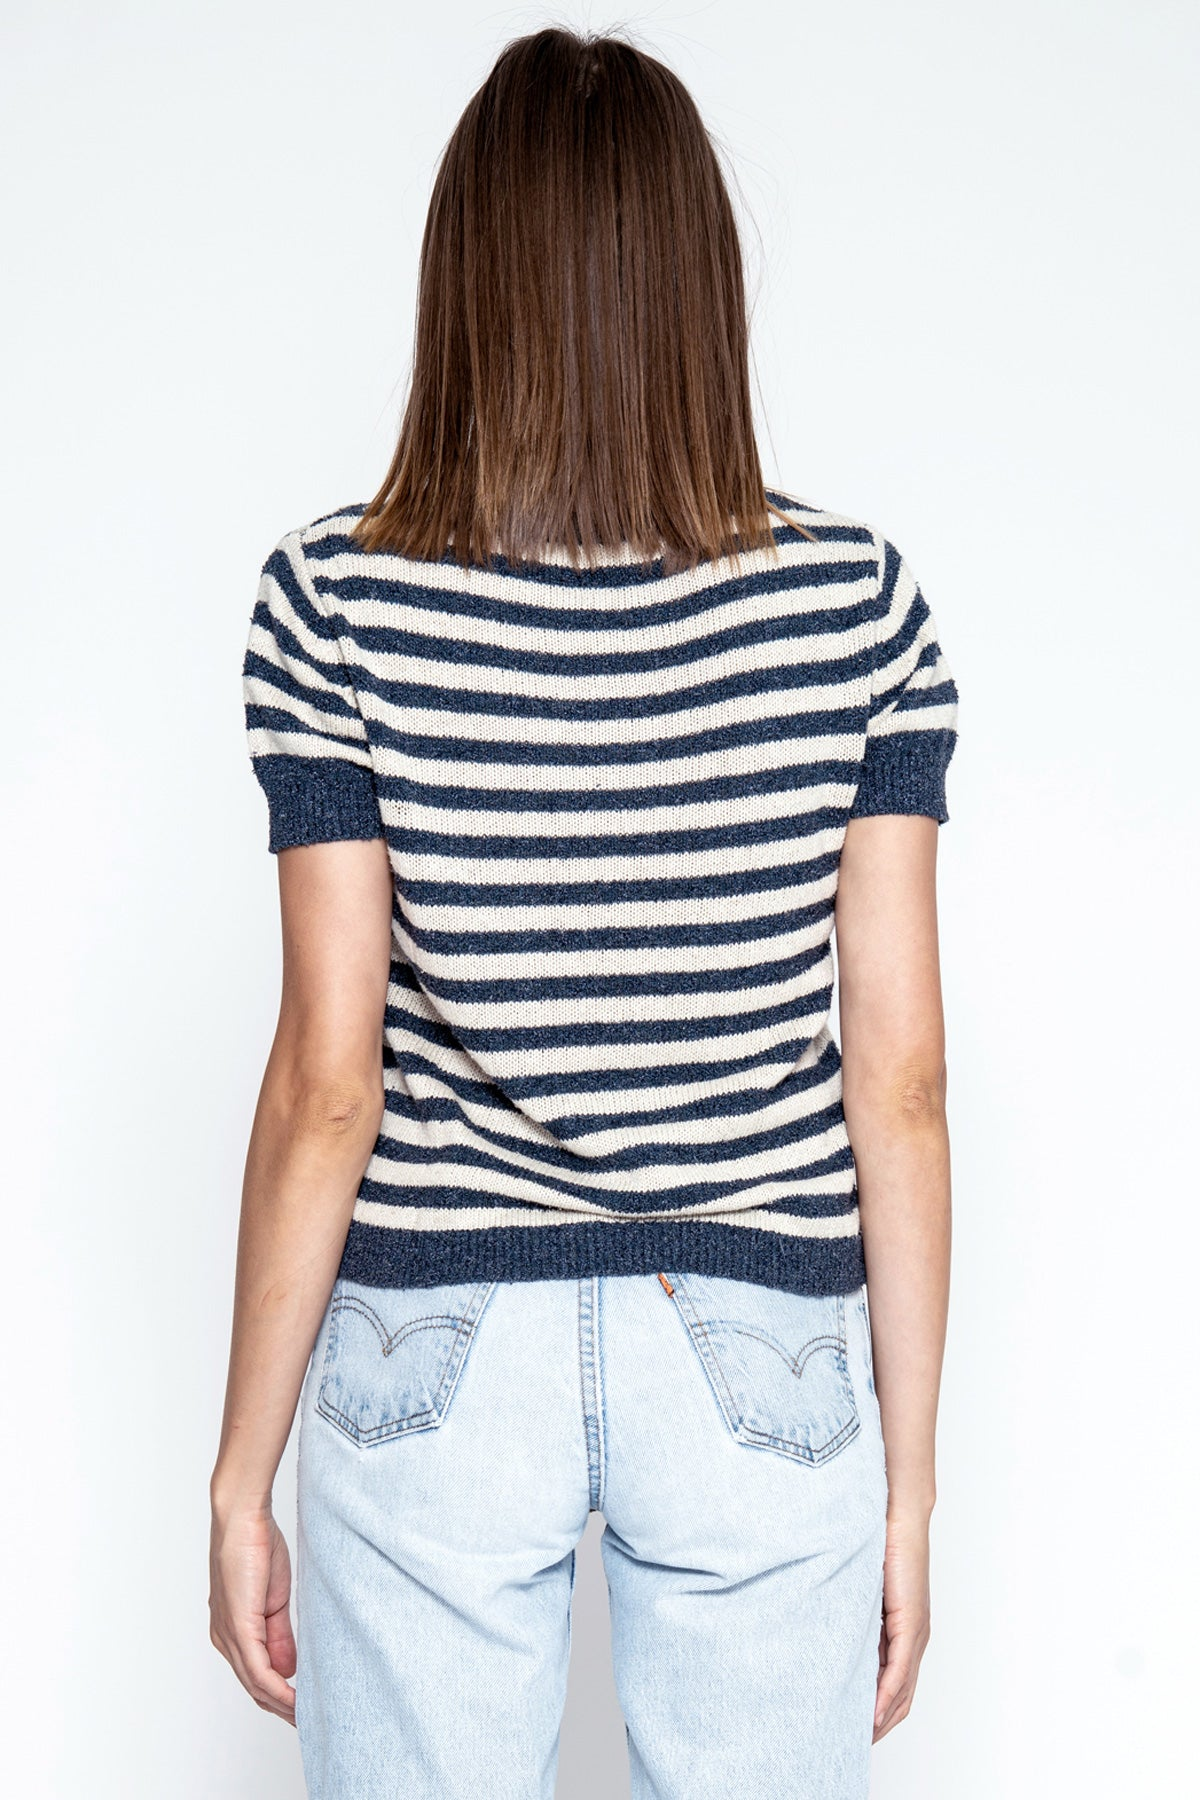 Emerson S/S Tee - Natural/Sailor